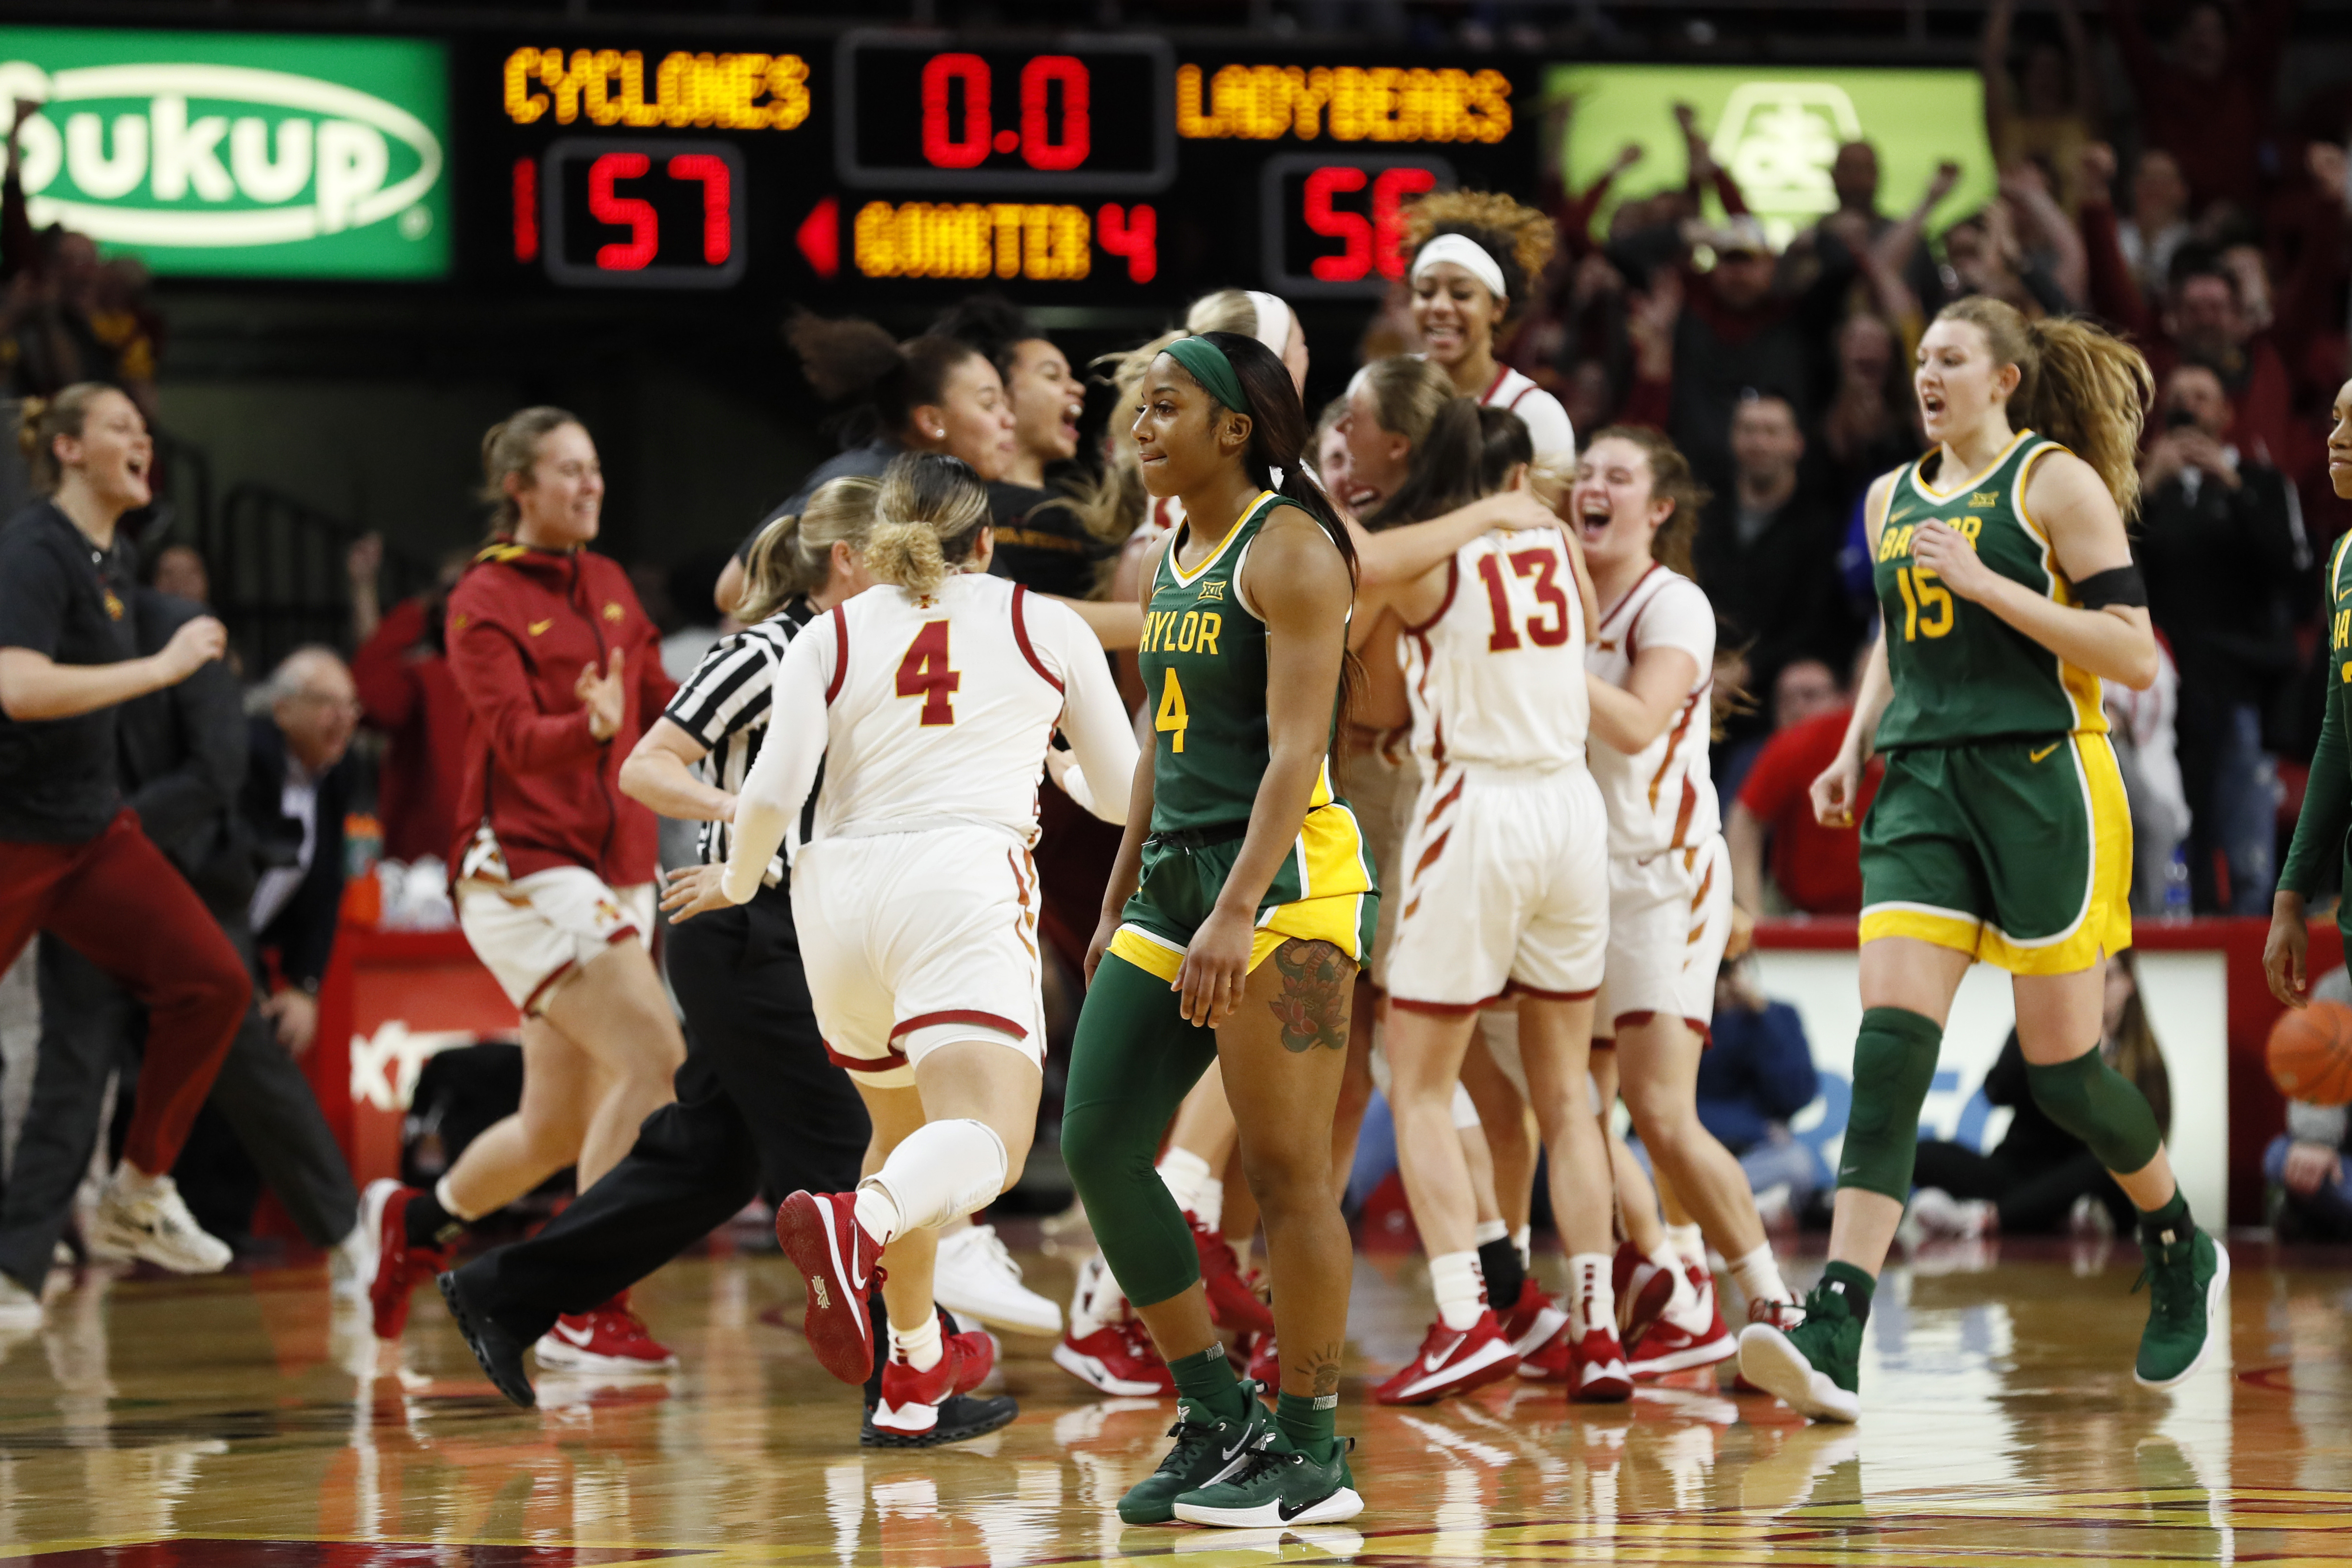 Iowa St stuns No. 2 Baylor, ending Lady Bears' Big 12 streak